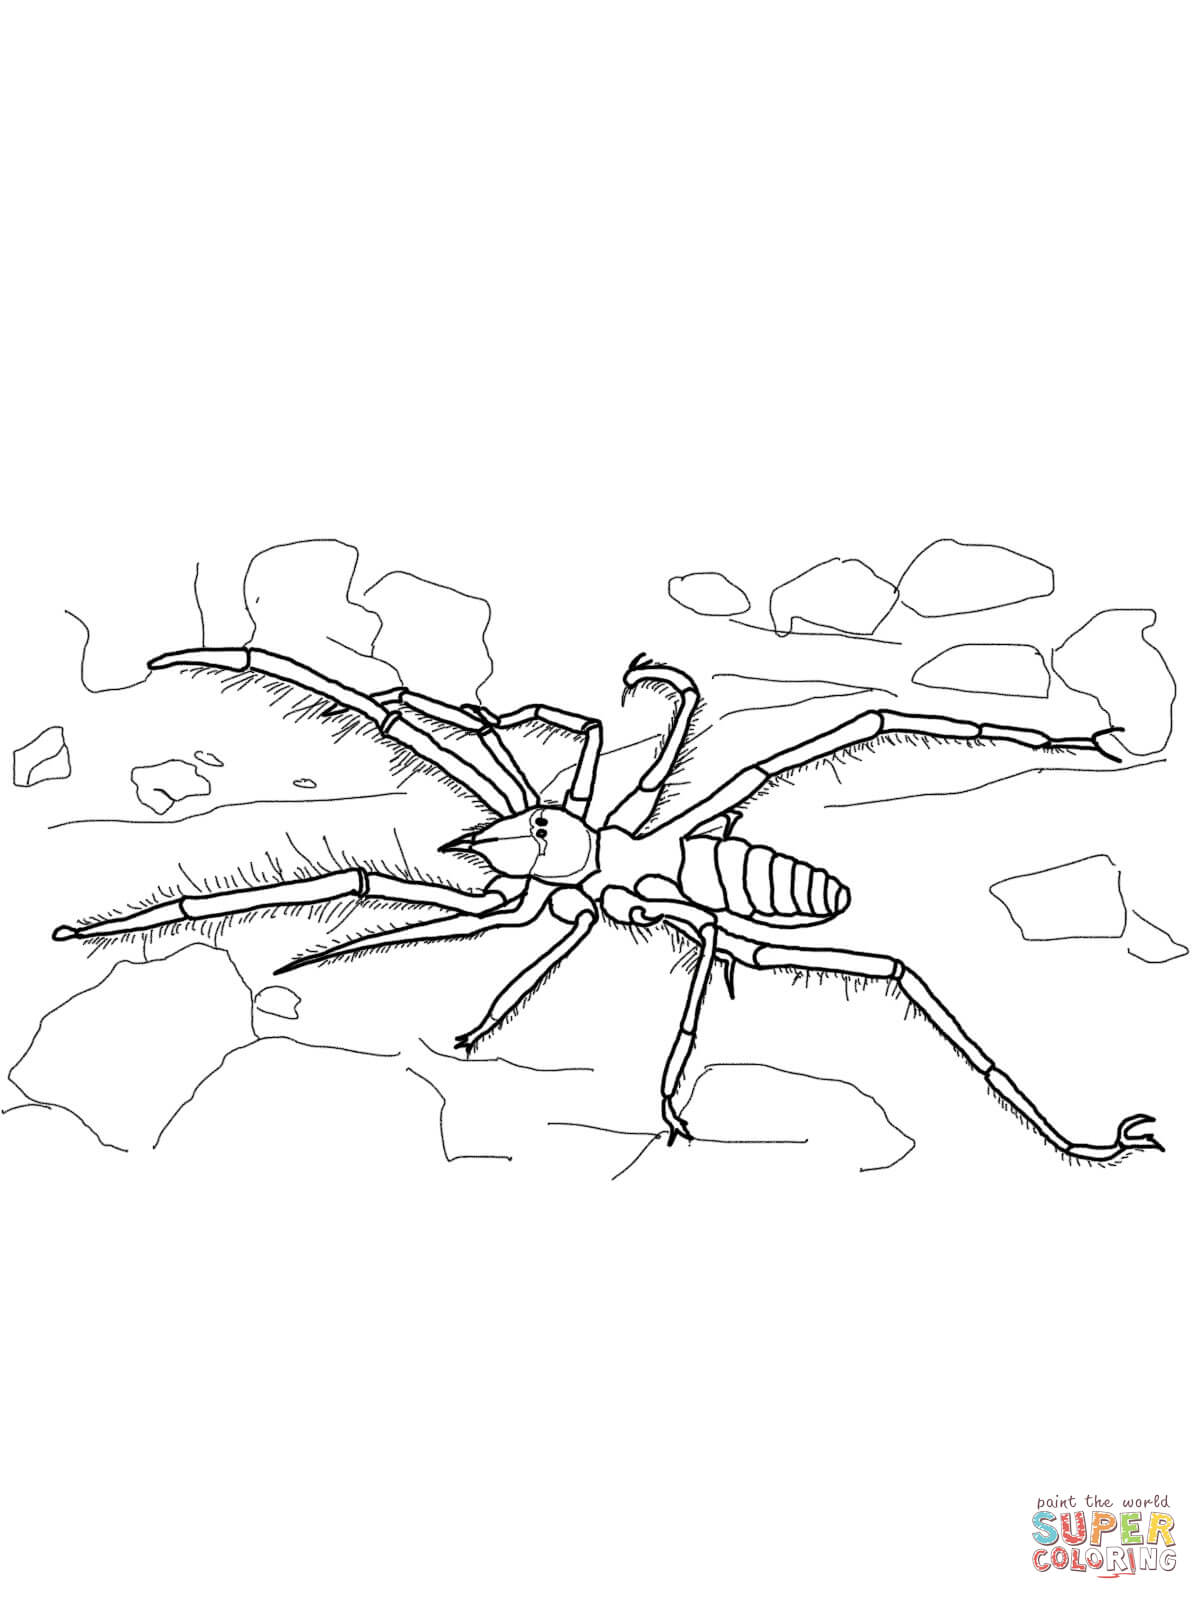 spider-coloring-page-0027-q1